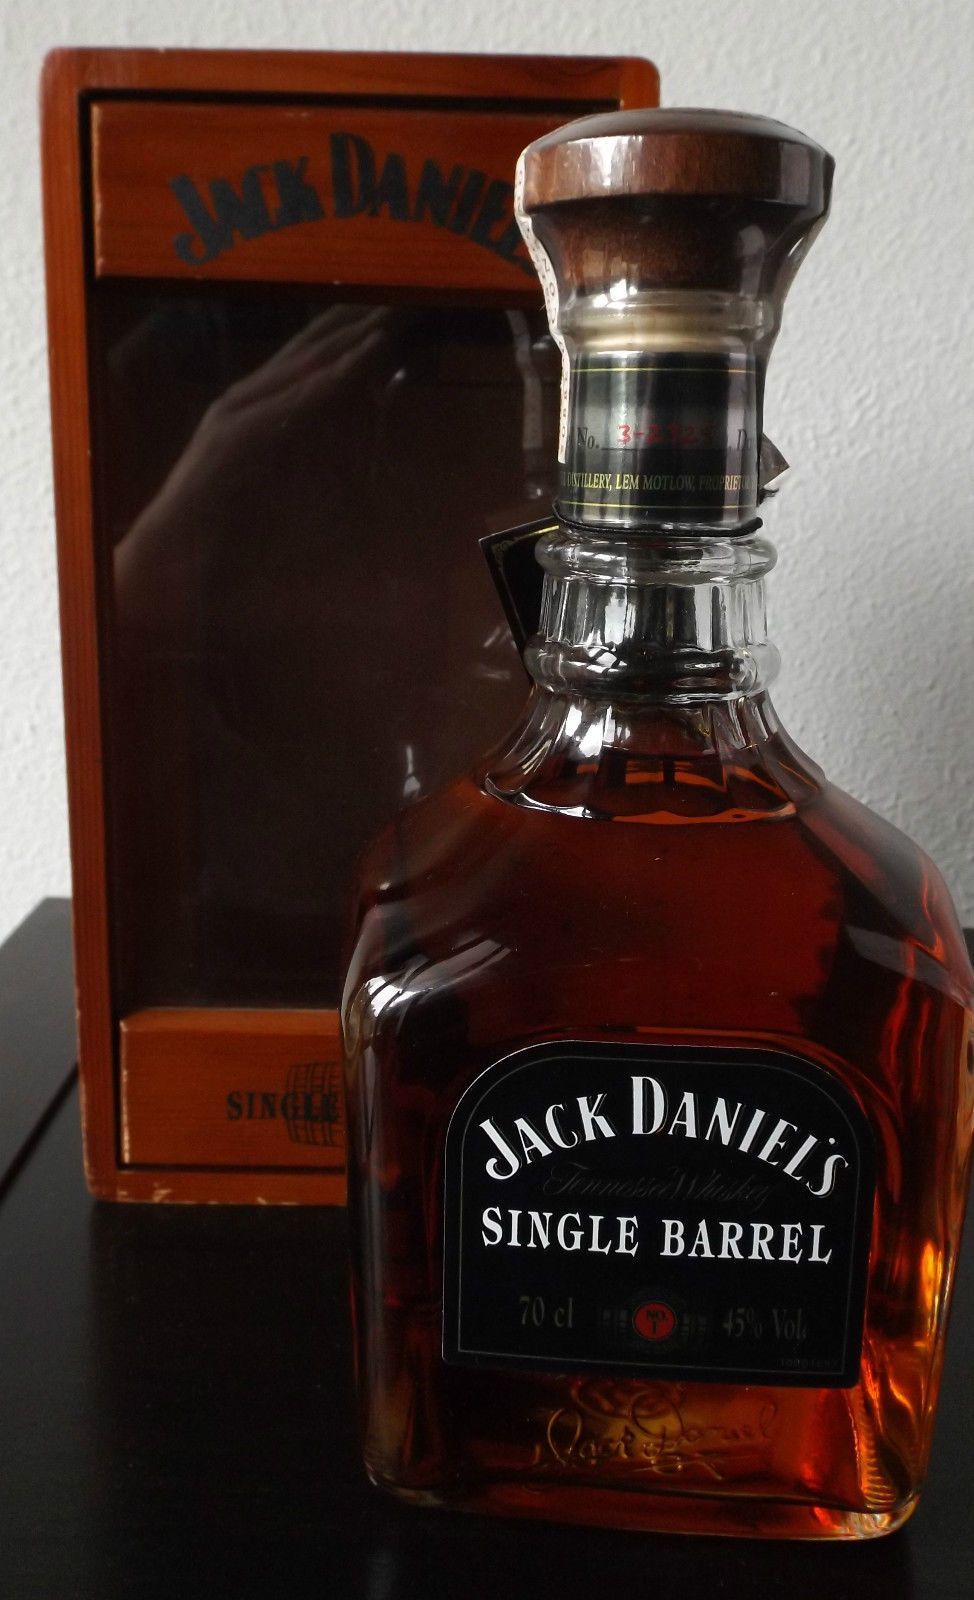 Jack Daniels Single Barrel Wood Box Portugal Decanter Glass Whiskey Whisky 2003 |